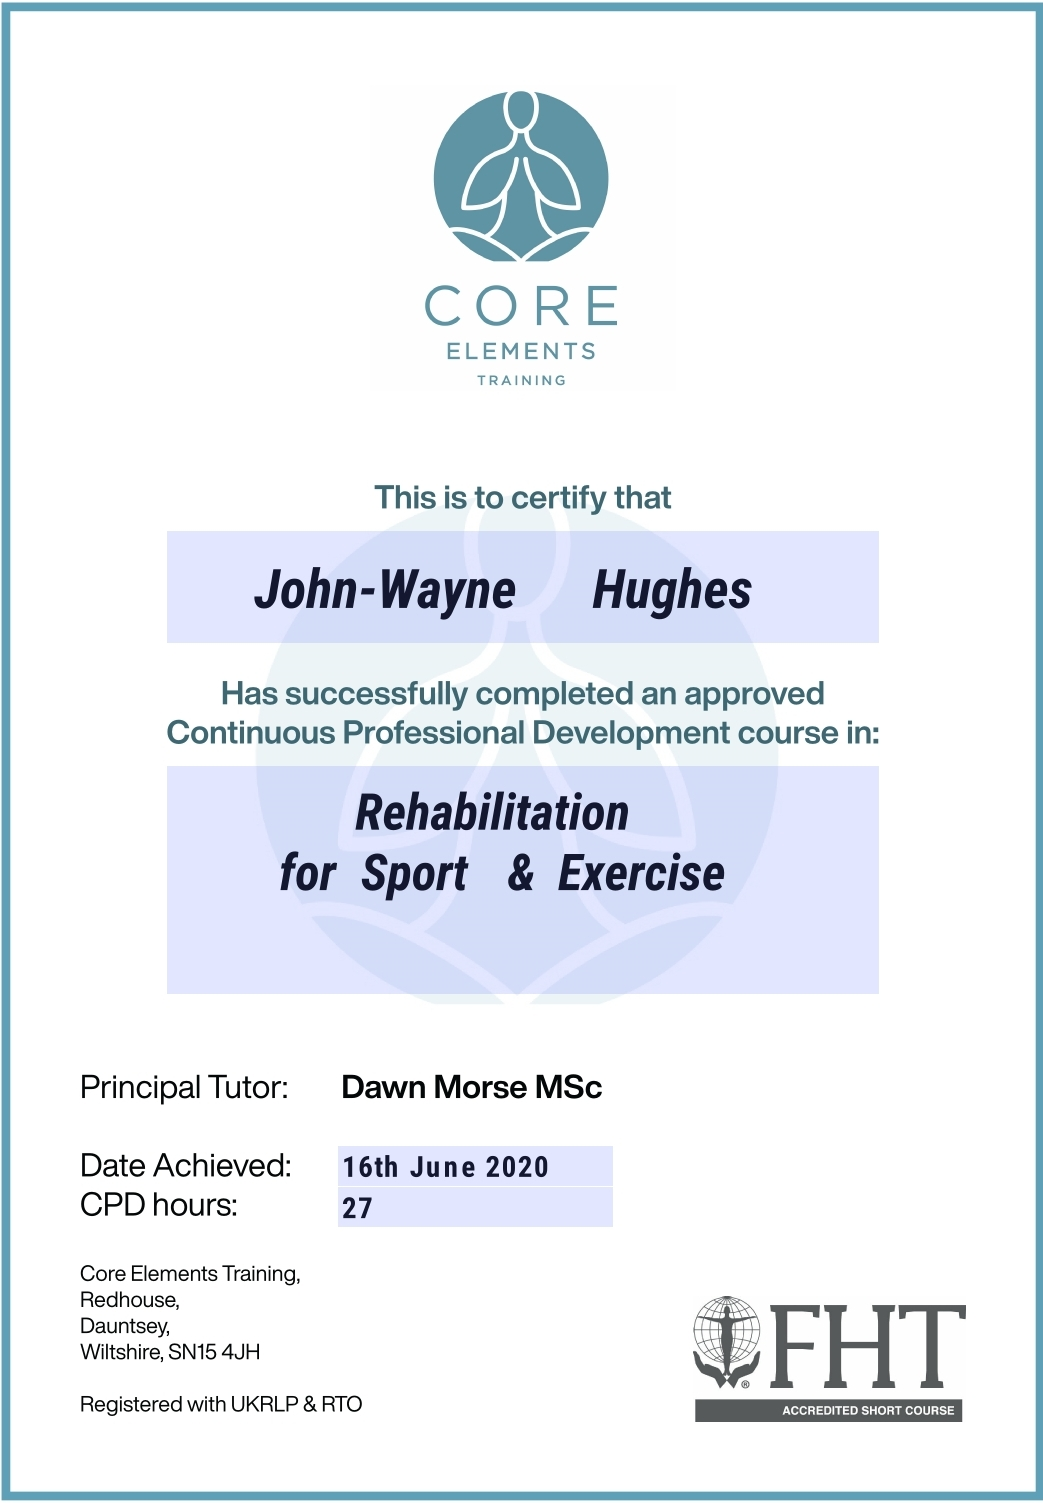 image-of-certificate-of-completion-of-cpd-in-sports-and-exercise-rehabilitation